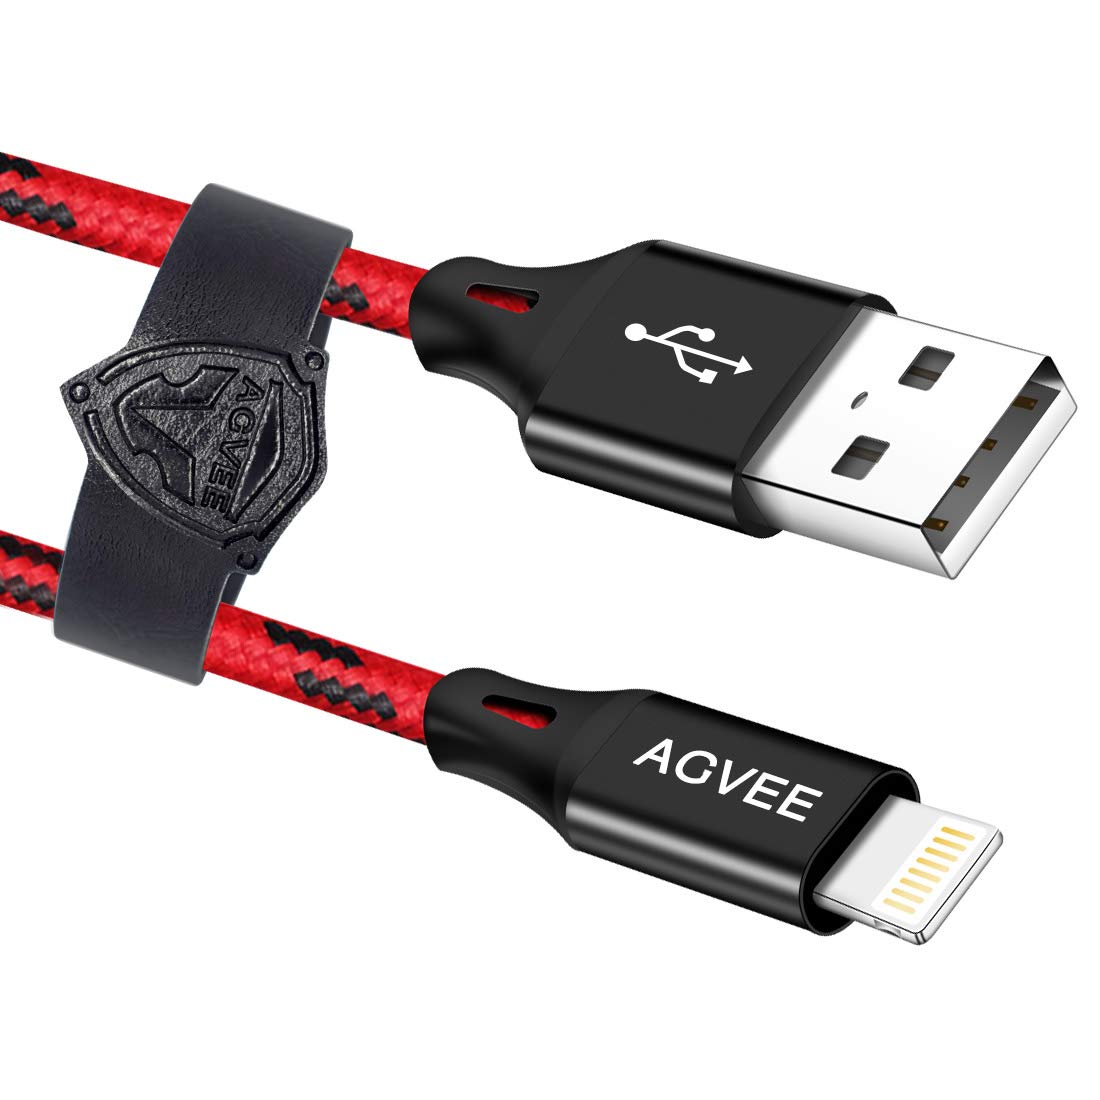 AGVEE Very Long Charger Cable for iPhone [2 Pack 15ft] Unbreakable End Tip, Durable Fast Lightning Charging Data Cord for iPhone 11 Pro Max X XS XR, 10x 10xs 10s, Case Friendly, Black and Red